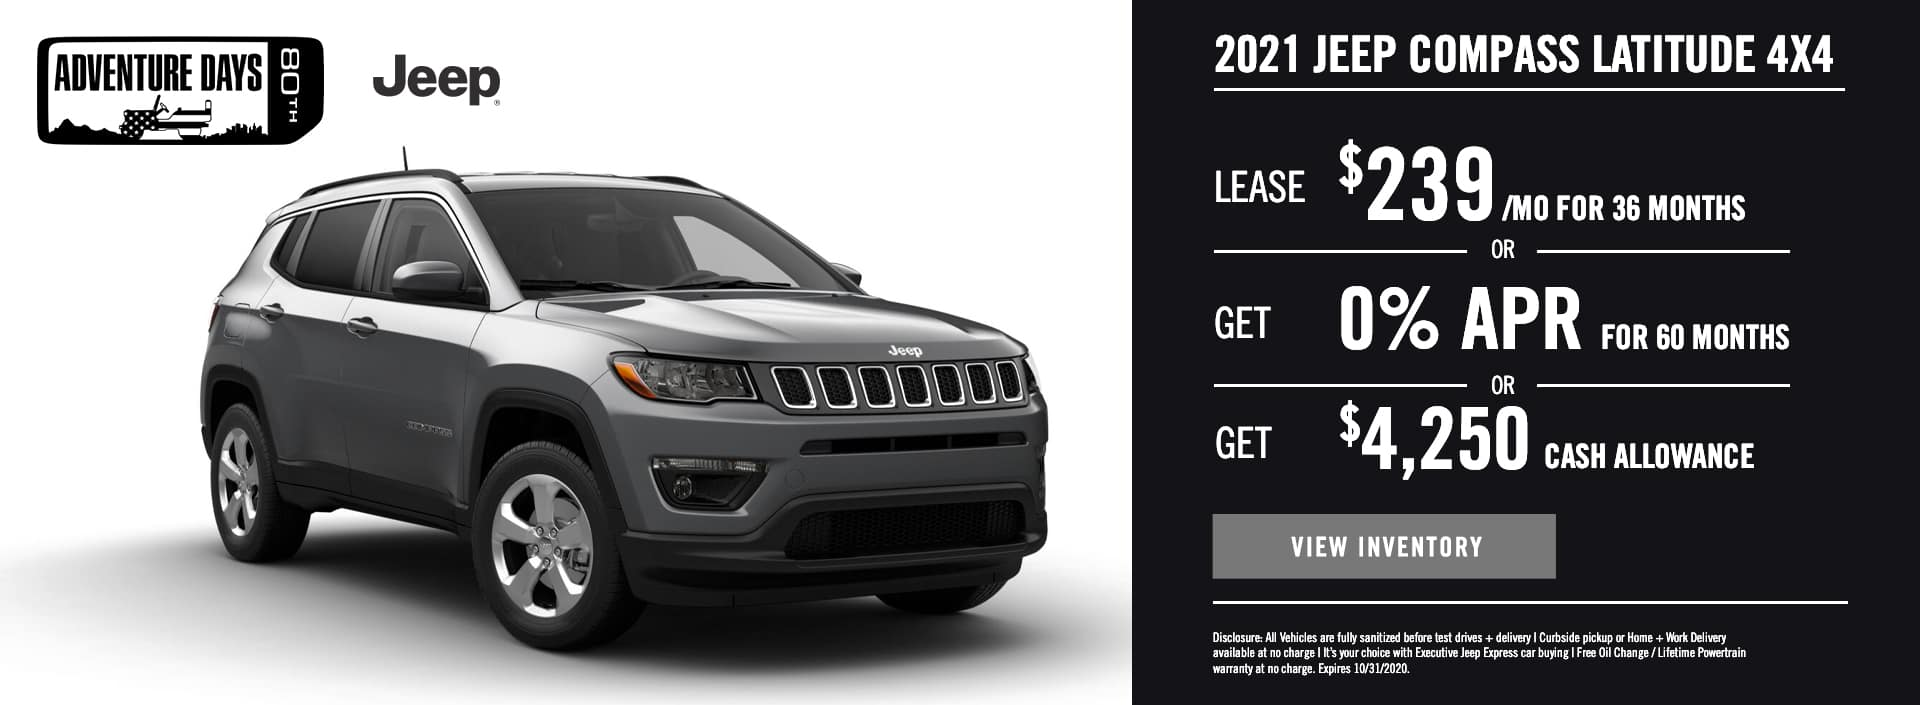 EAG_Jeep_2021 Jeep Compass Latitude 4×4 (1)